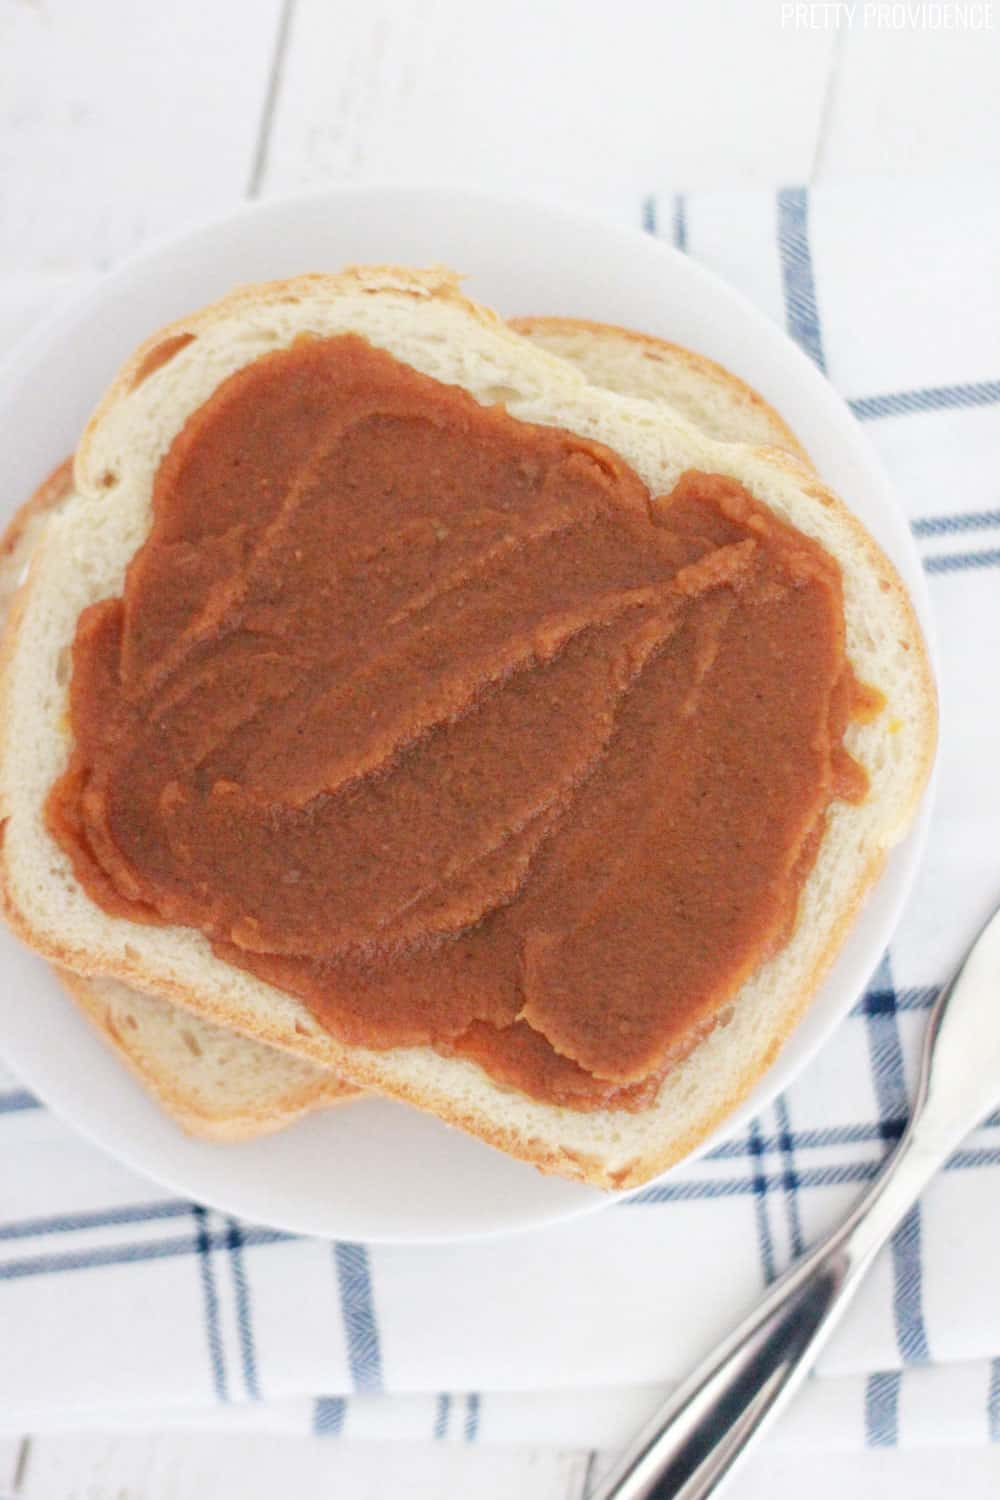 Do you love pumpkin everything? You're going to want to try this slow cooker pumpkin butter recipe! It's so easy and so good!